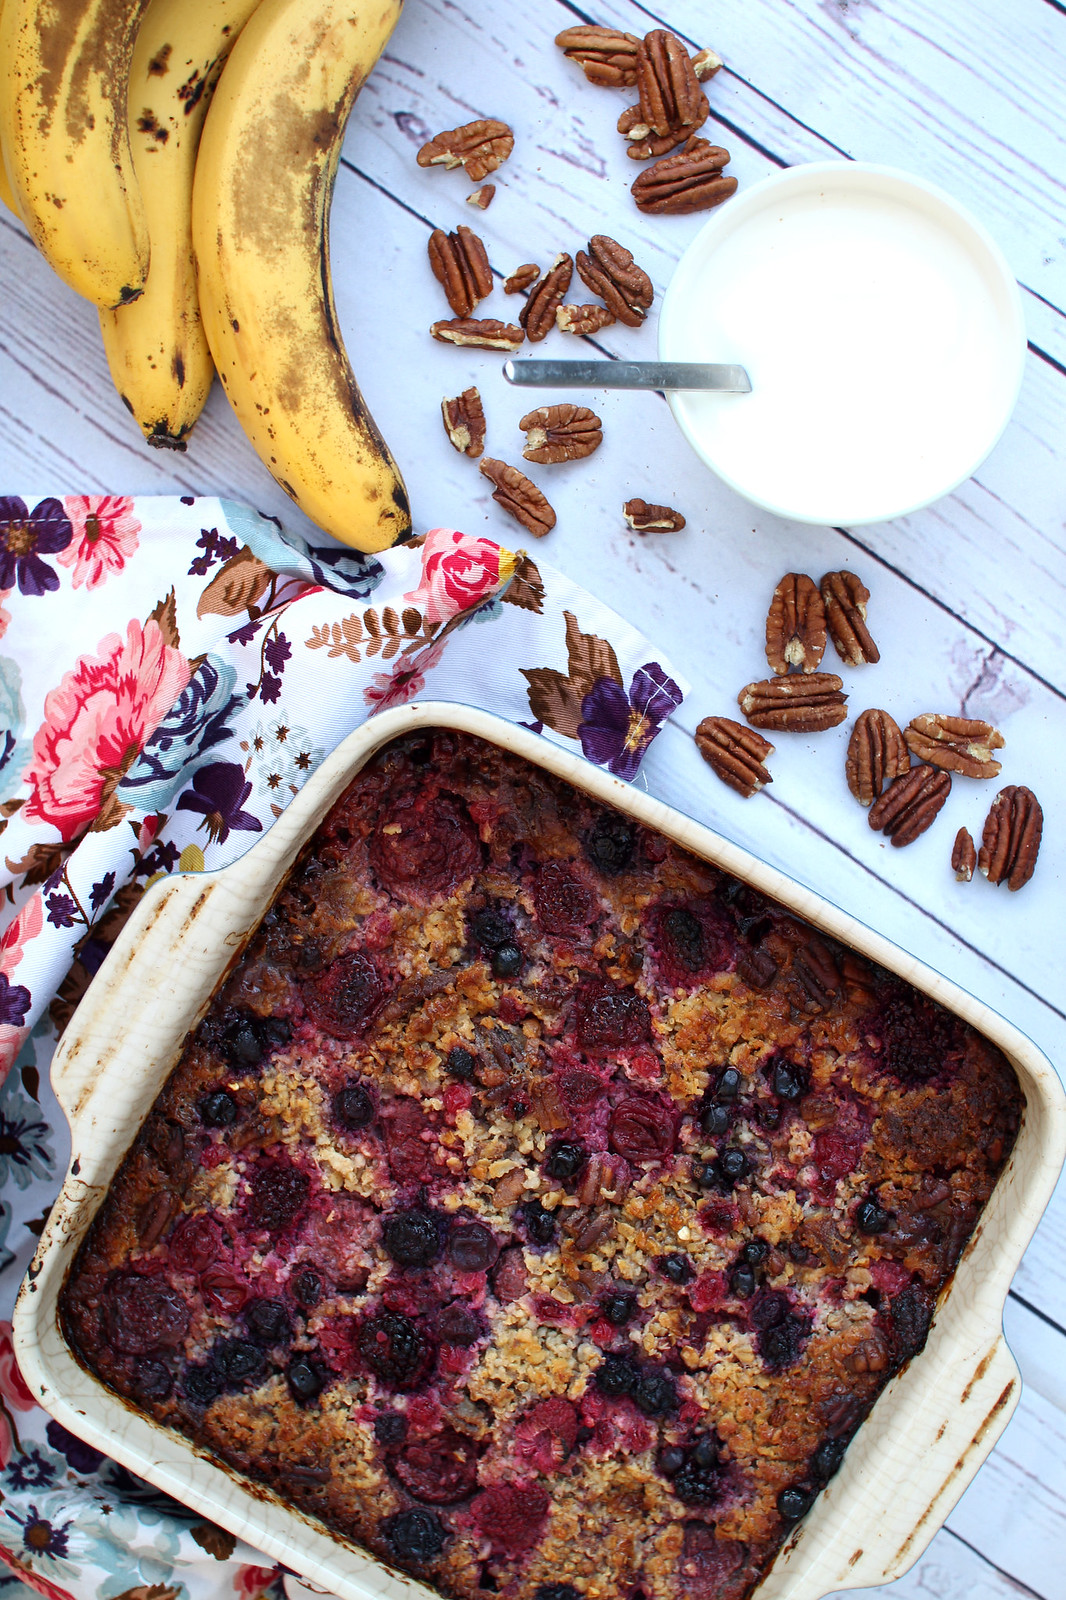 Healthy gluten free baked oatmeal pecan berry recipe lifestyle blogger uk